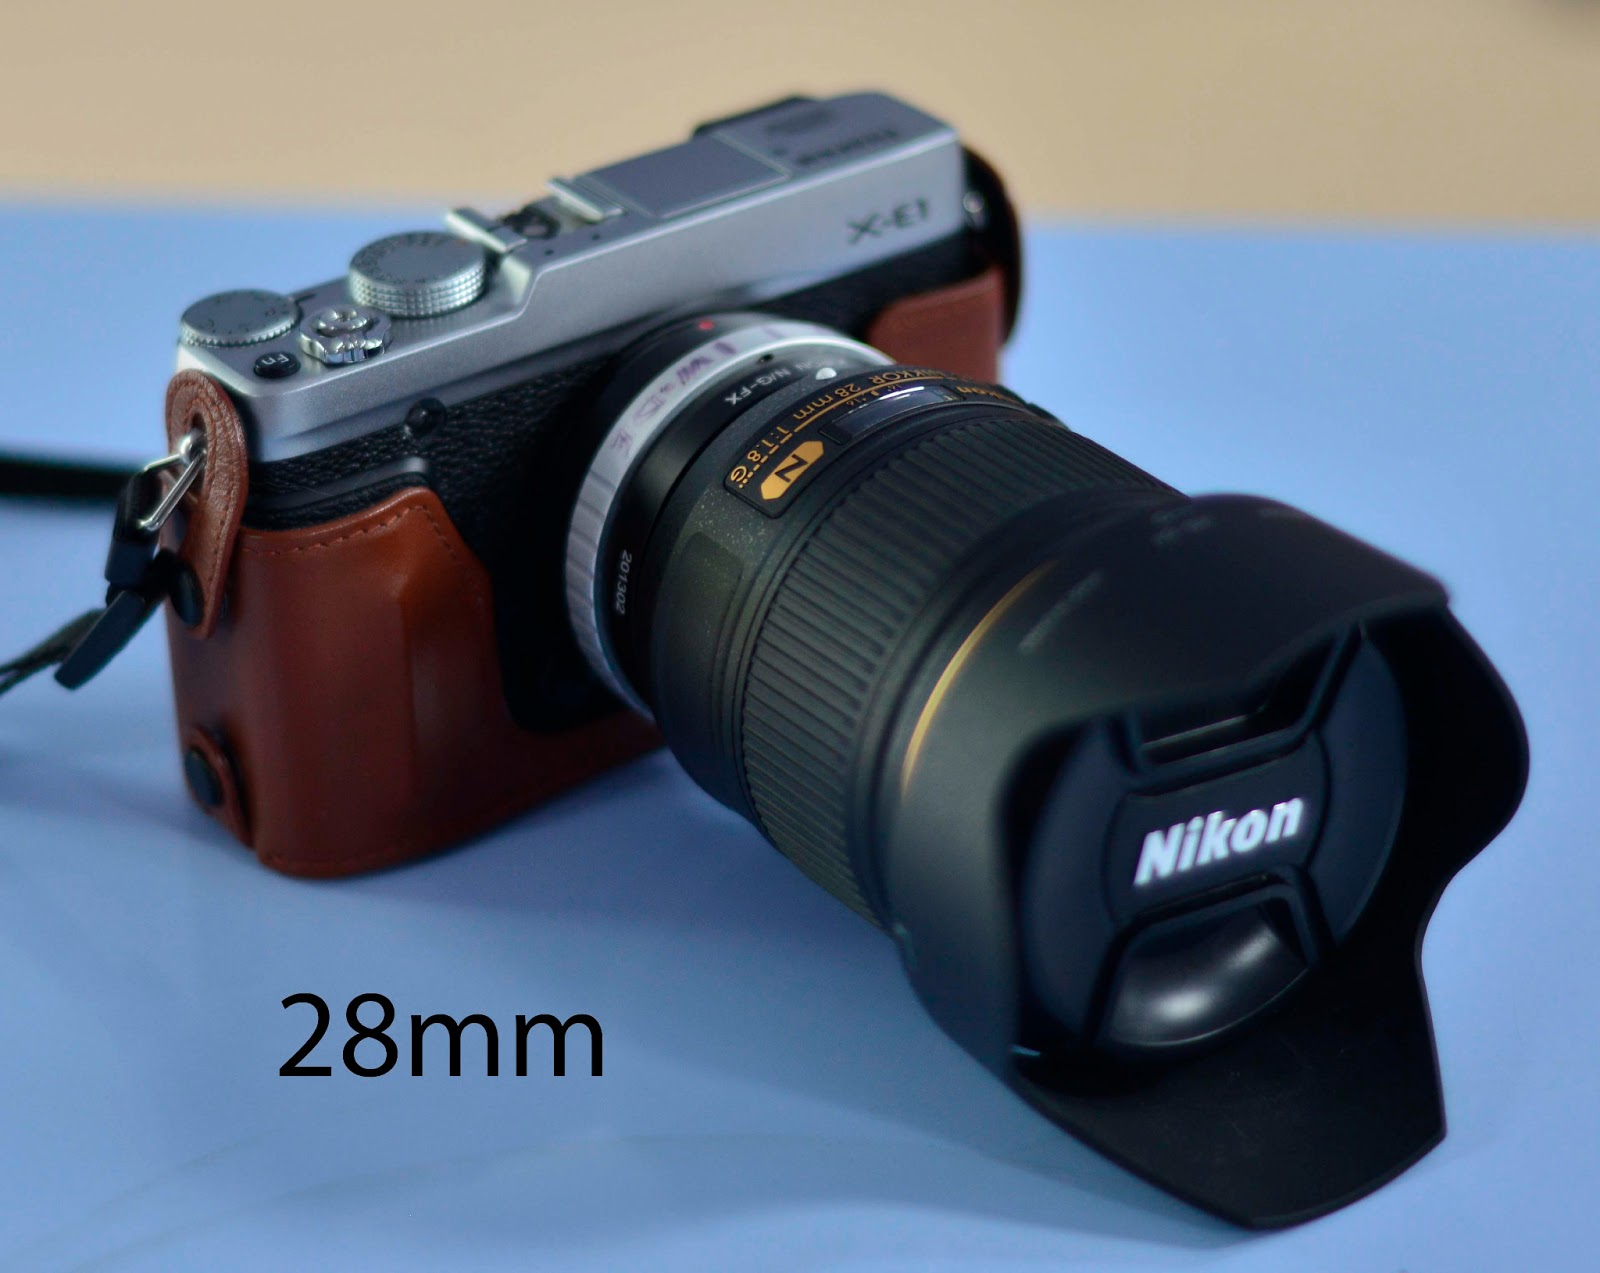 Nikon 28mm And 85mm F 18g Lenses On Fuji X E1 Continued Kipon G Lens To Leica Sl Camera Adapter Incidentally Just Give An Idea As What Using The Is Like See Below Two Marks Ive Put Barrel Of Show How